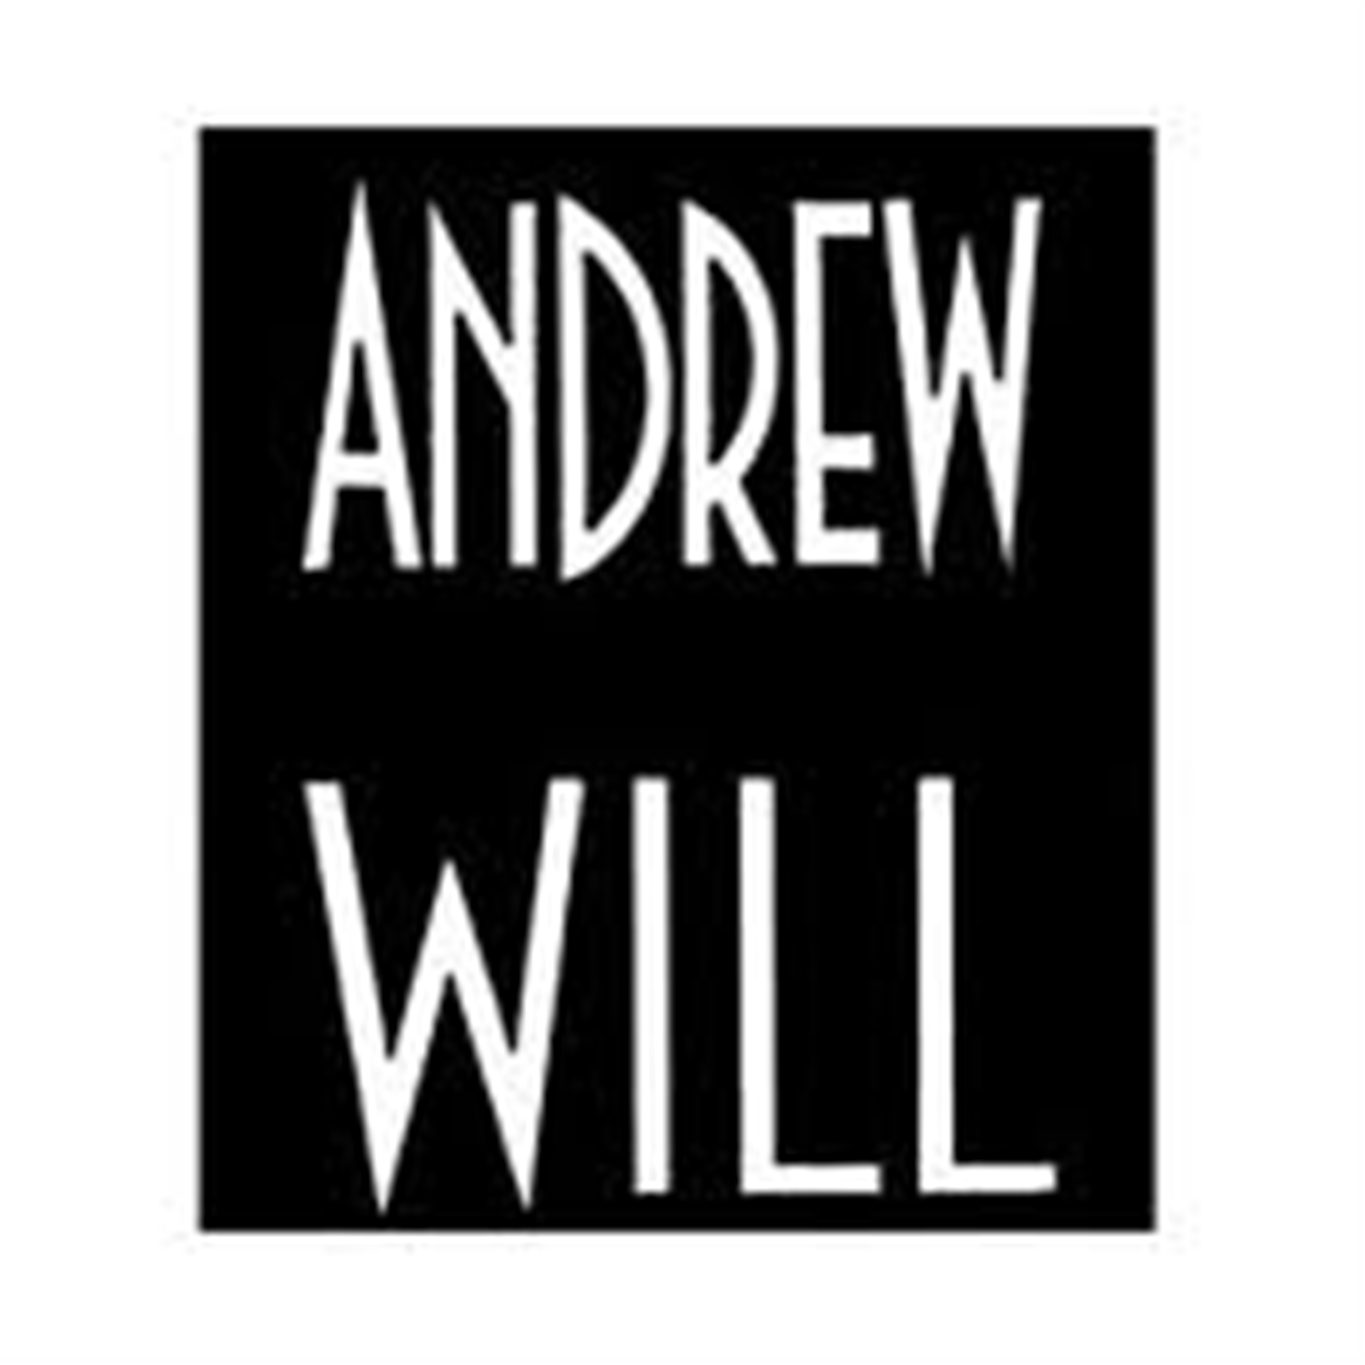 ANDREW WILL WINERY SORELLA WASHINGTON